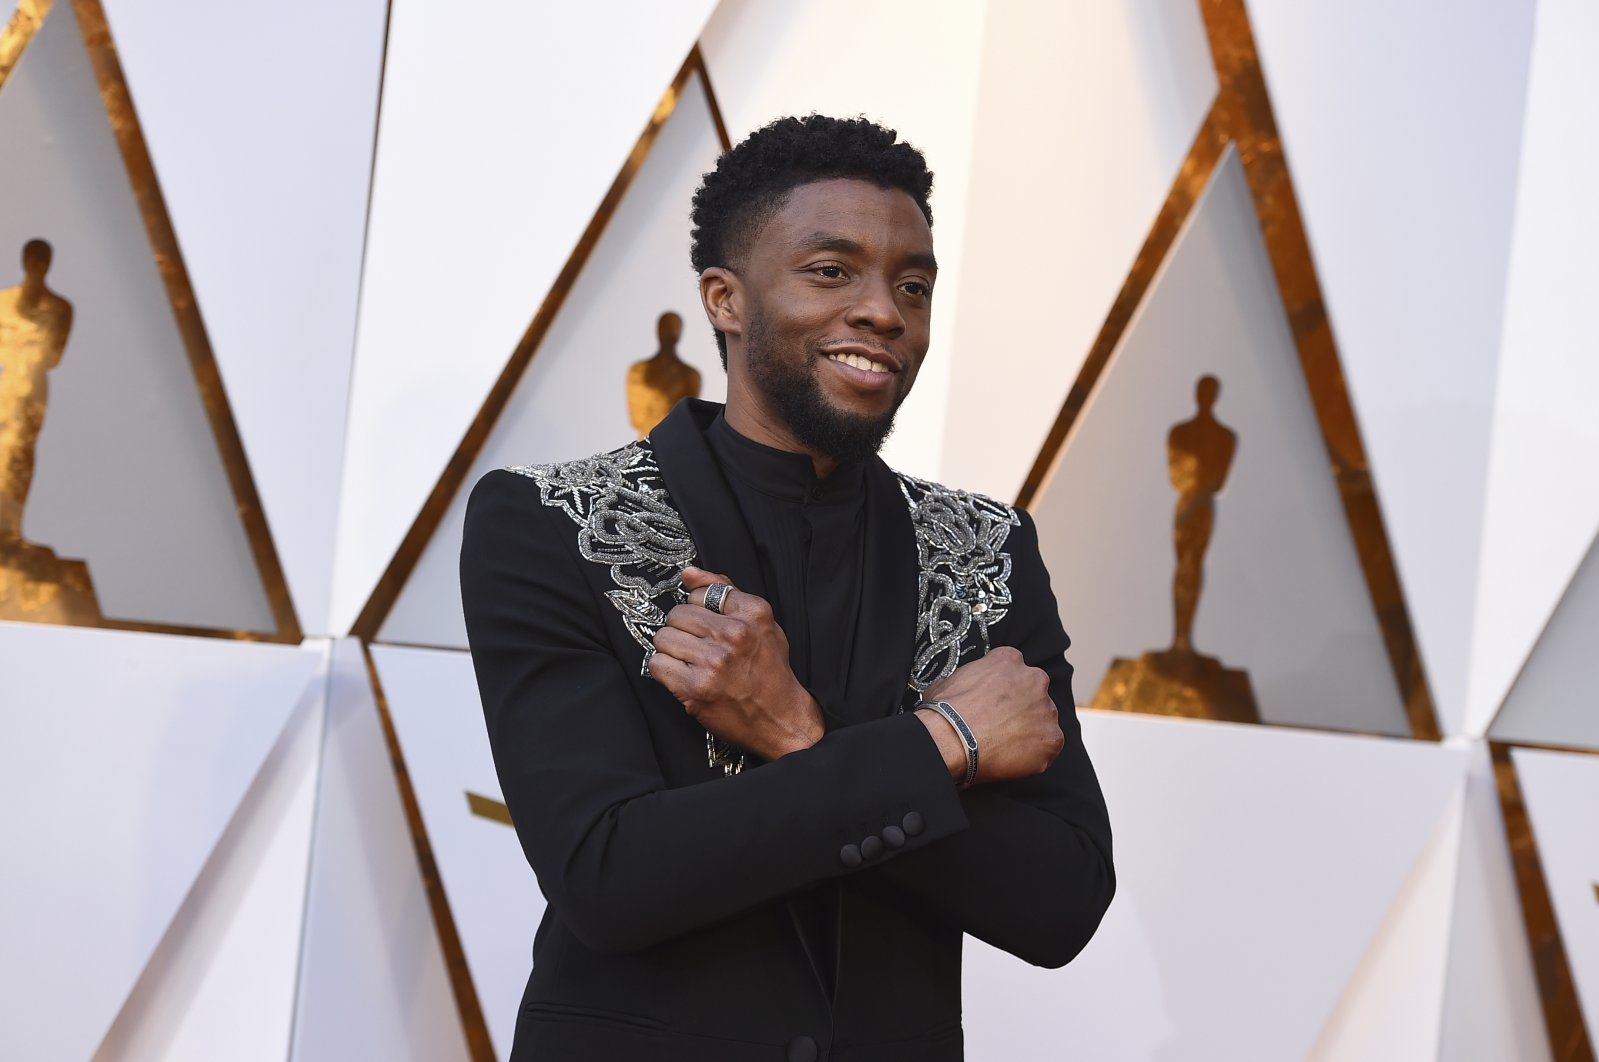 In this March 4, 2018 file photo, Chadwick Boseman arrives at the Oscars at the Dolby Theatre in Los Angeles. (AP Photo)